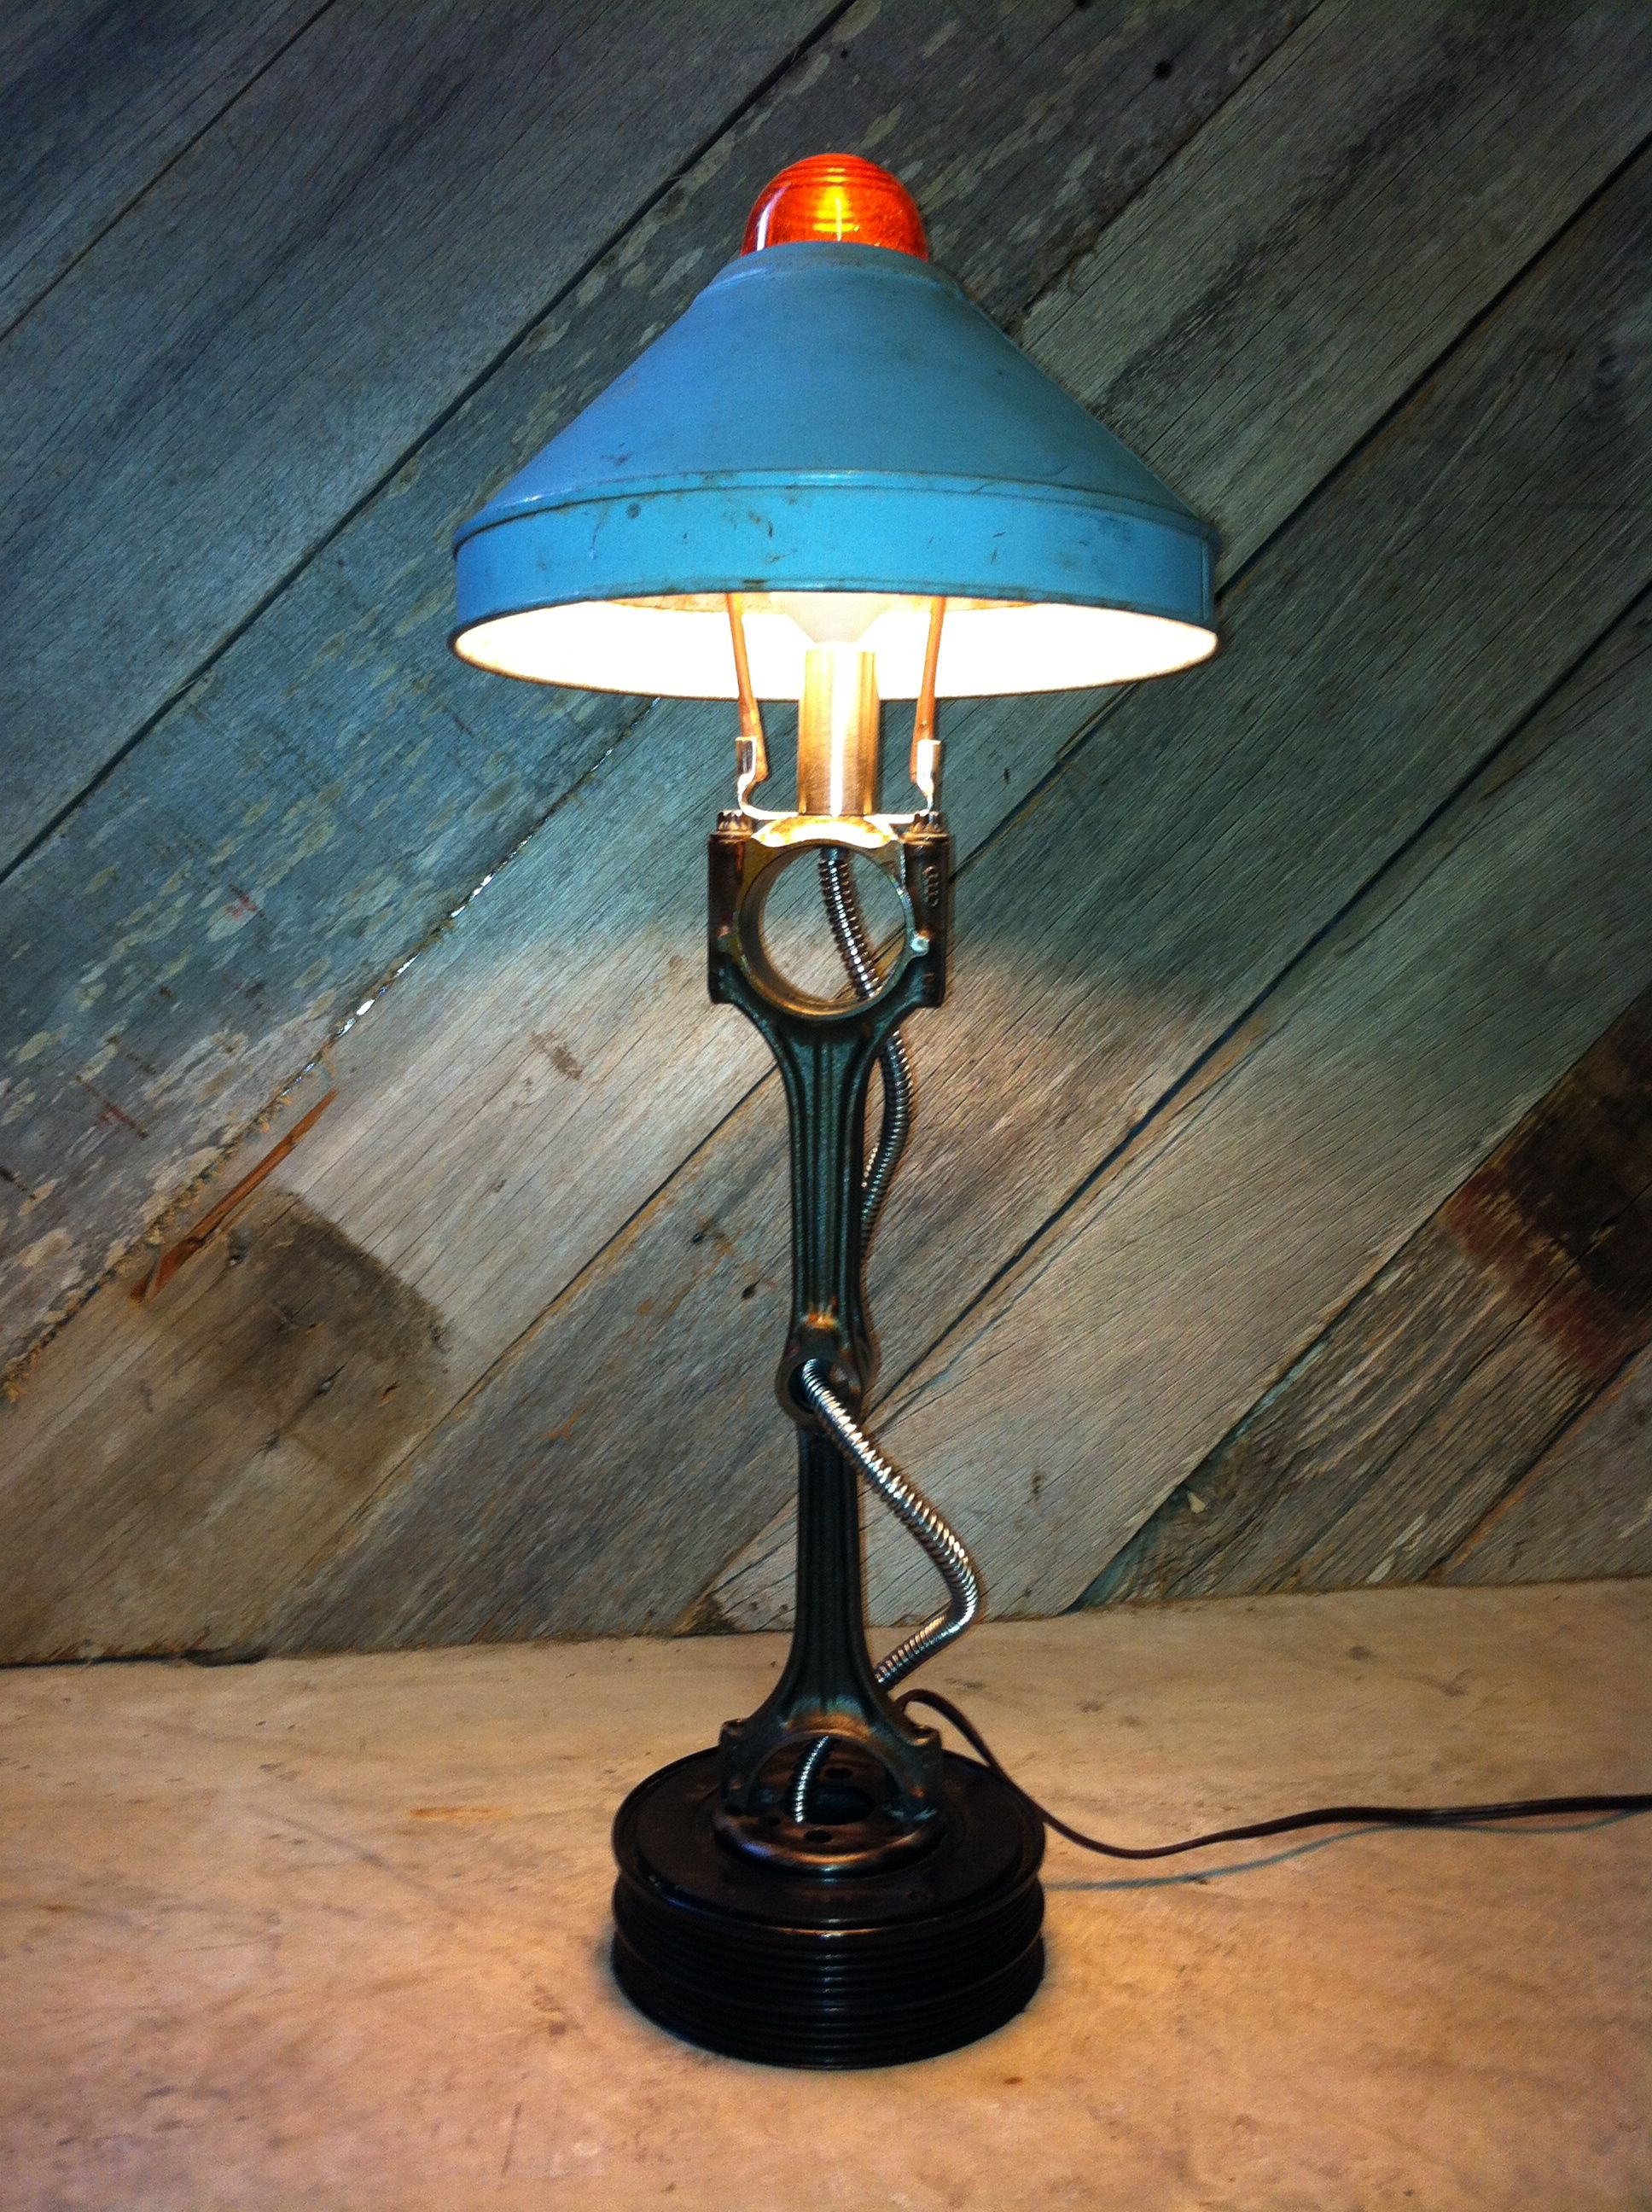 home table lamp cor industrial pulley abinger floor of unique decor car distributor d chic inspirational coastal tripod